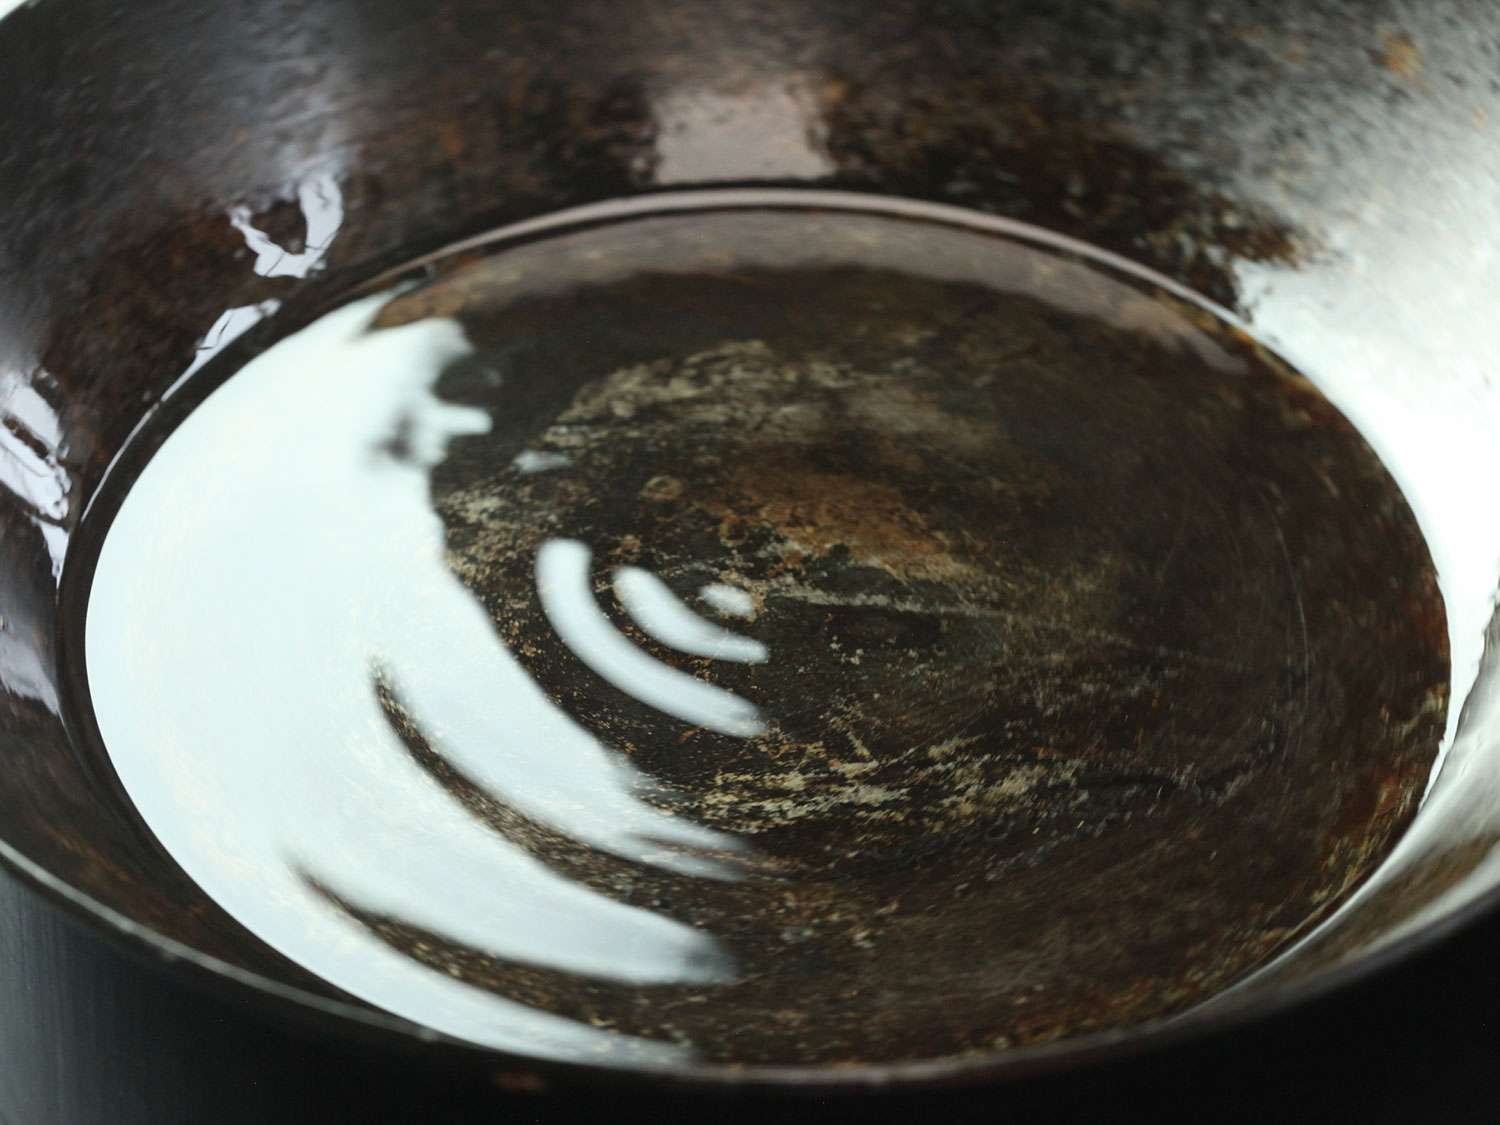 Layer of vegetable oil in a carbon steel skillet being heated until it shimmers before searing salmon.